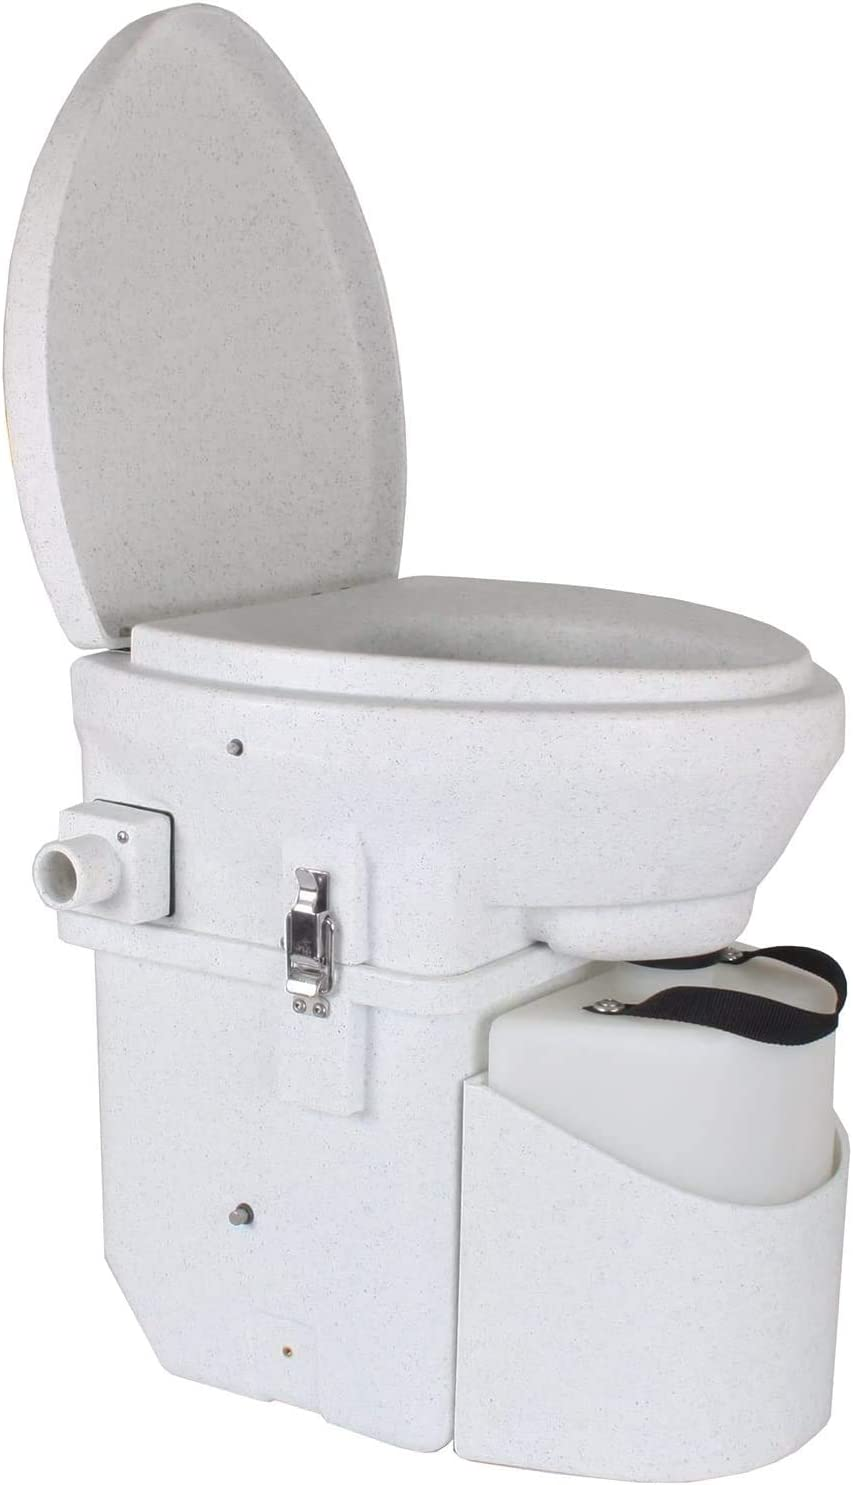 Nature's Head Self Contained Composting Toilet with Close Quarters